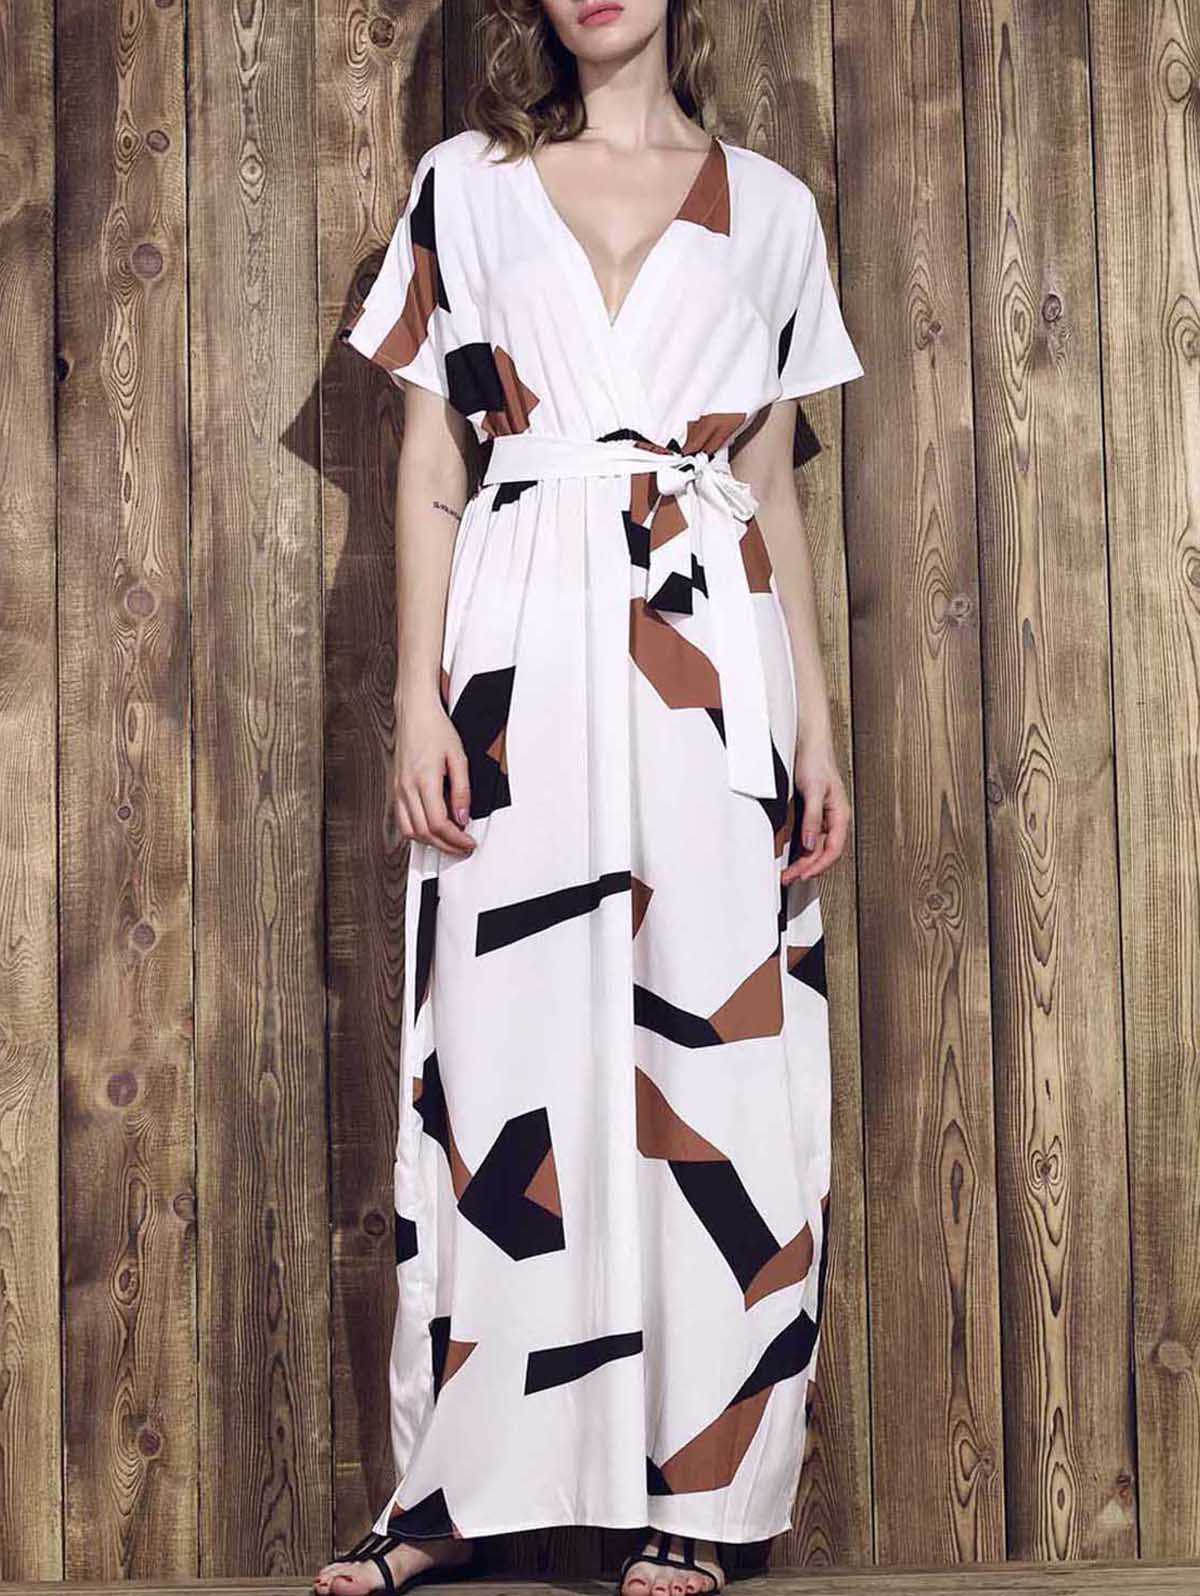 Fashionable Short Sleeve Plunging Neck Hit Color Printed Women's Dress - WHITE M